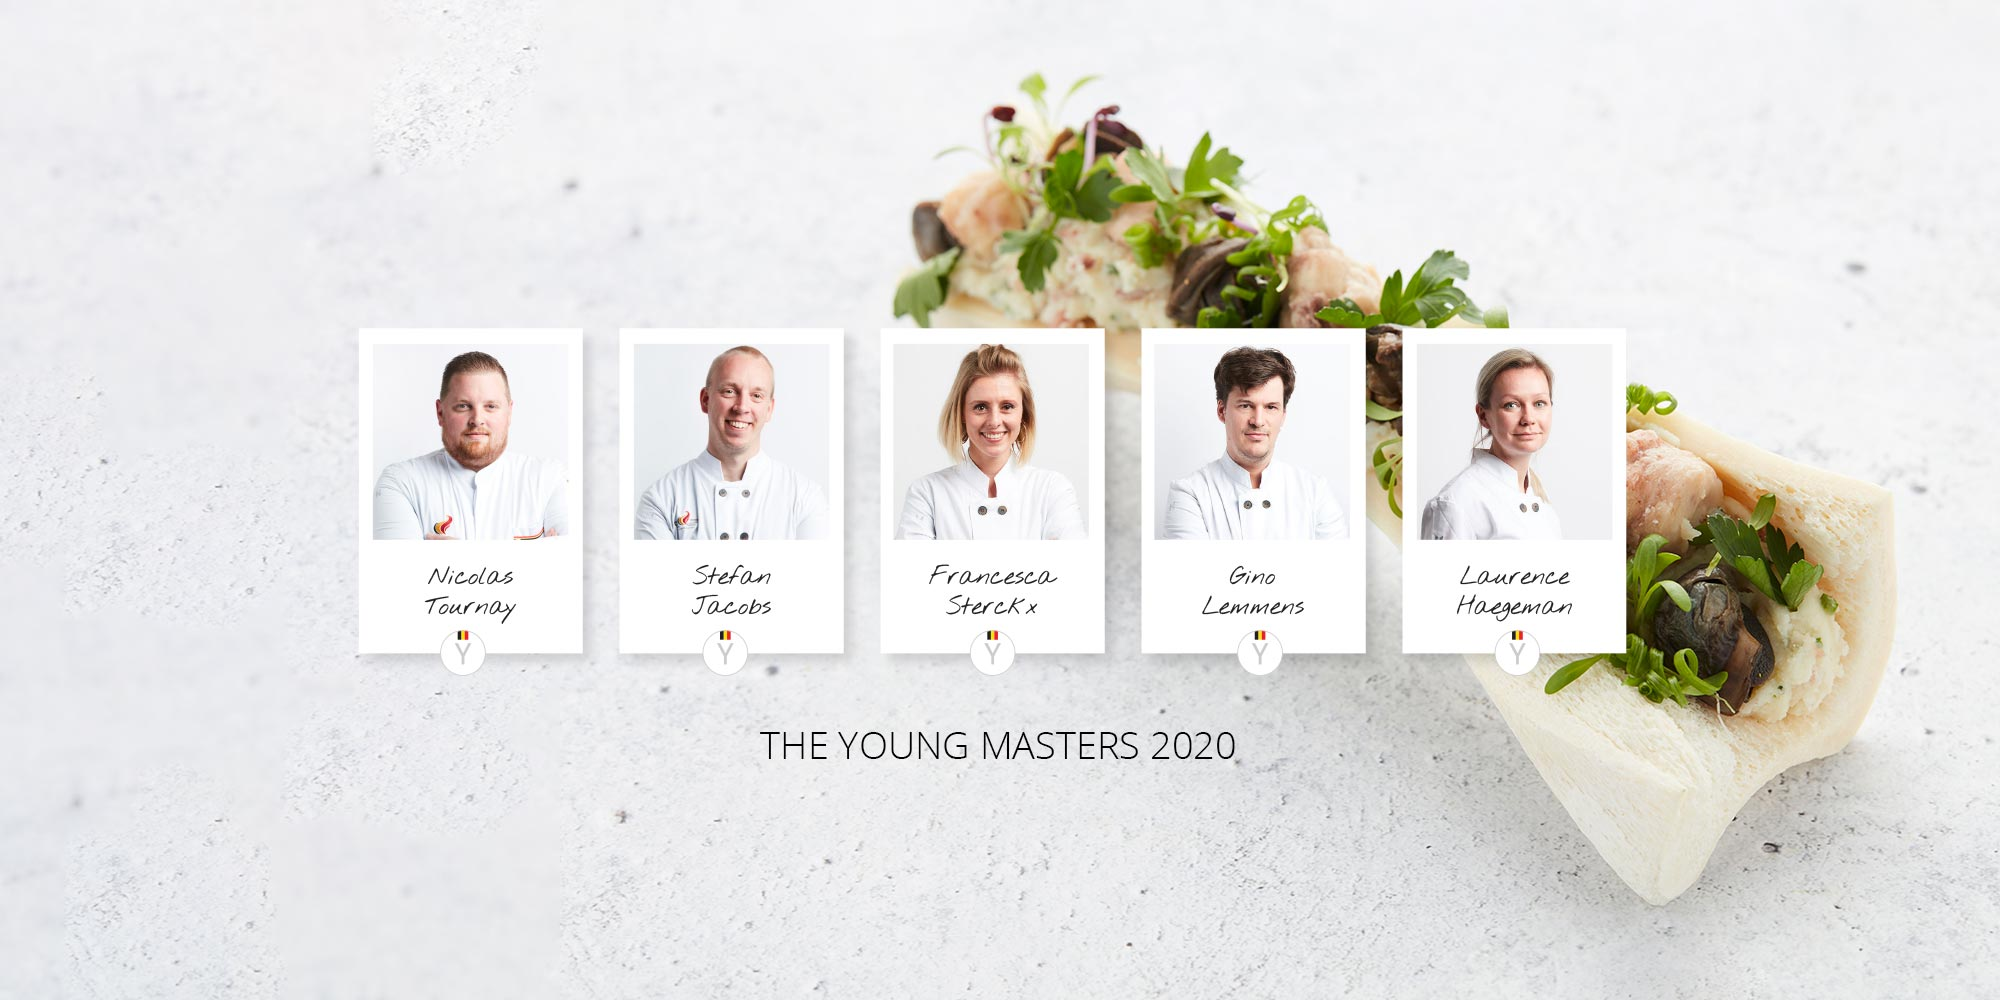 The Young Masters 2020